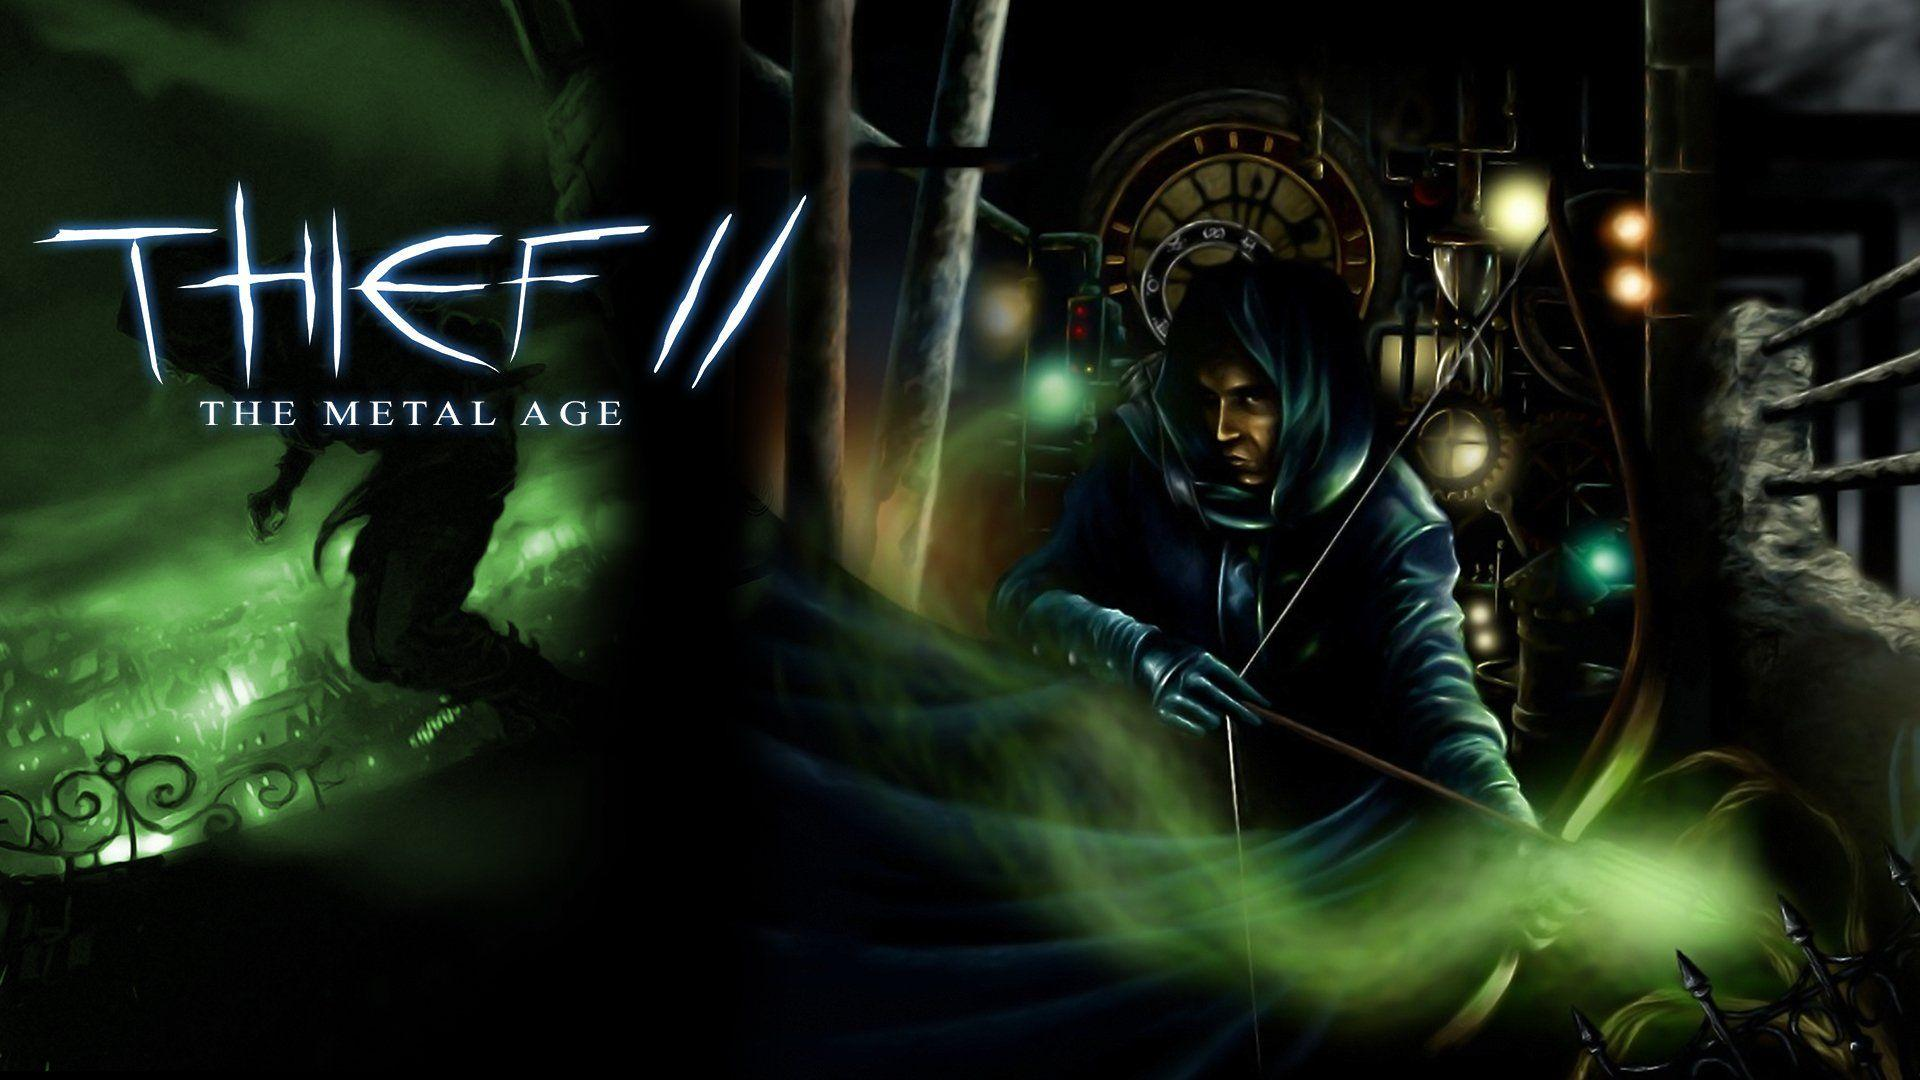 Thief II: The Metal Age HD Wallpapers